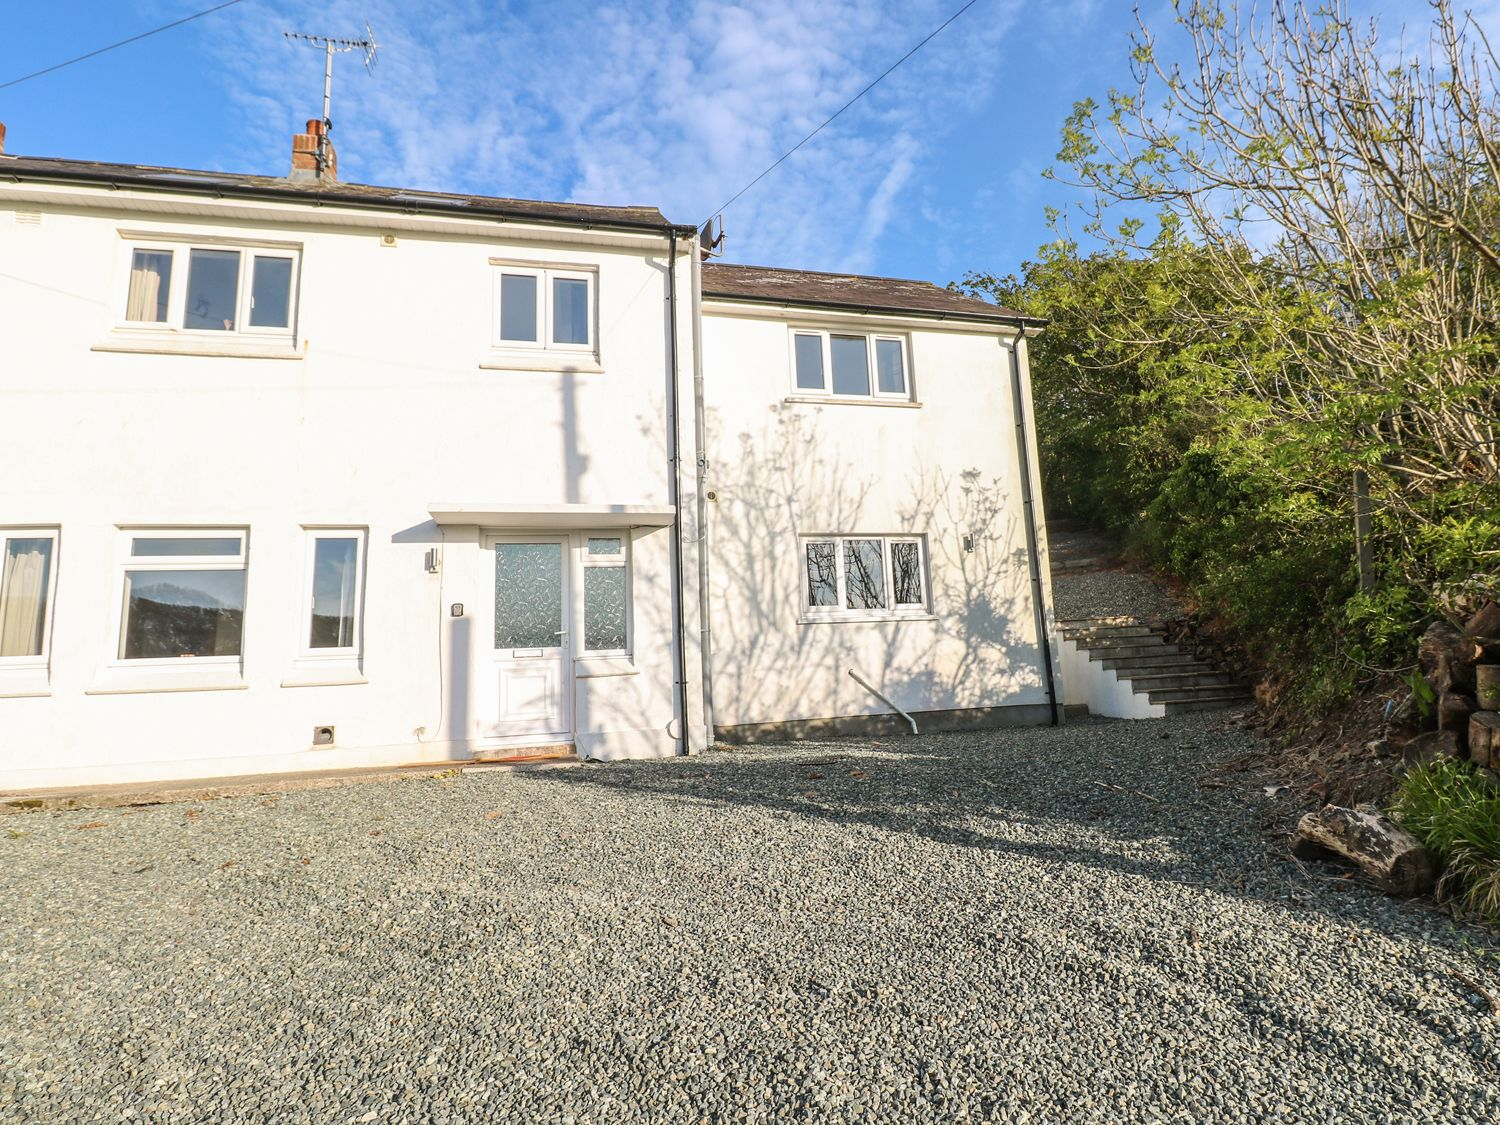 105 Blue Anchor Way - South Wales - 1006685 - photo 1